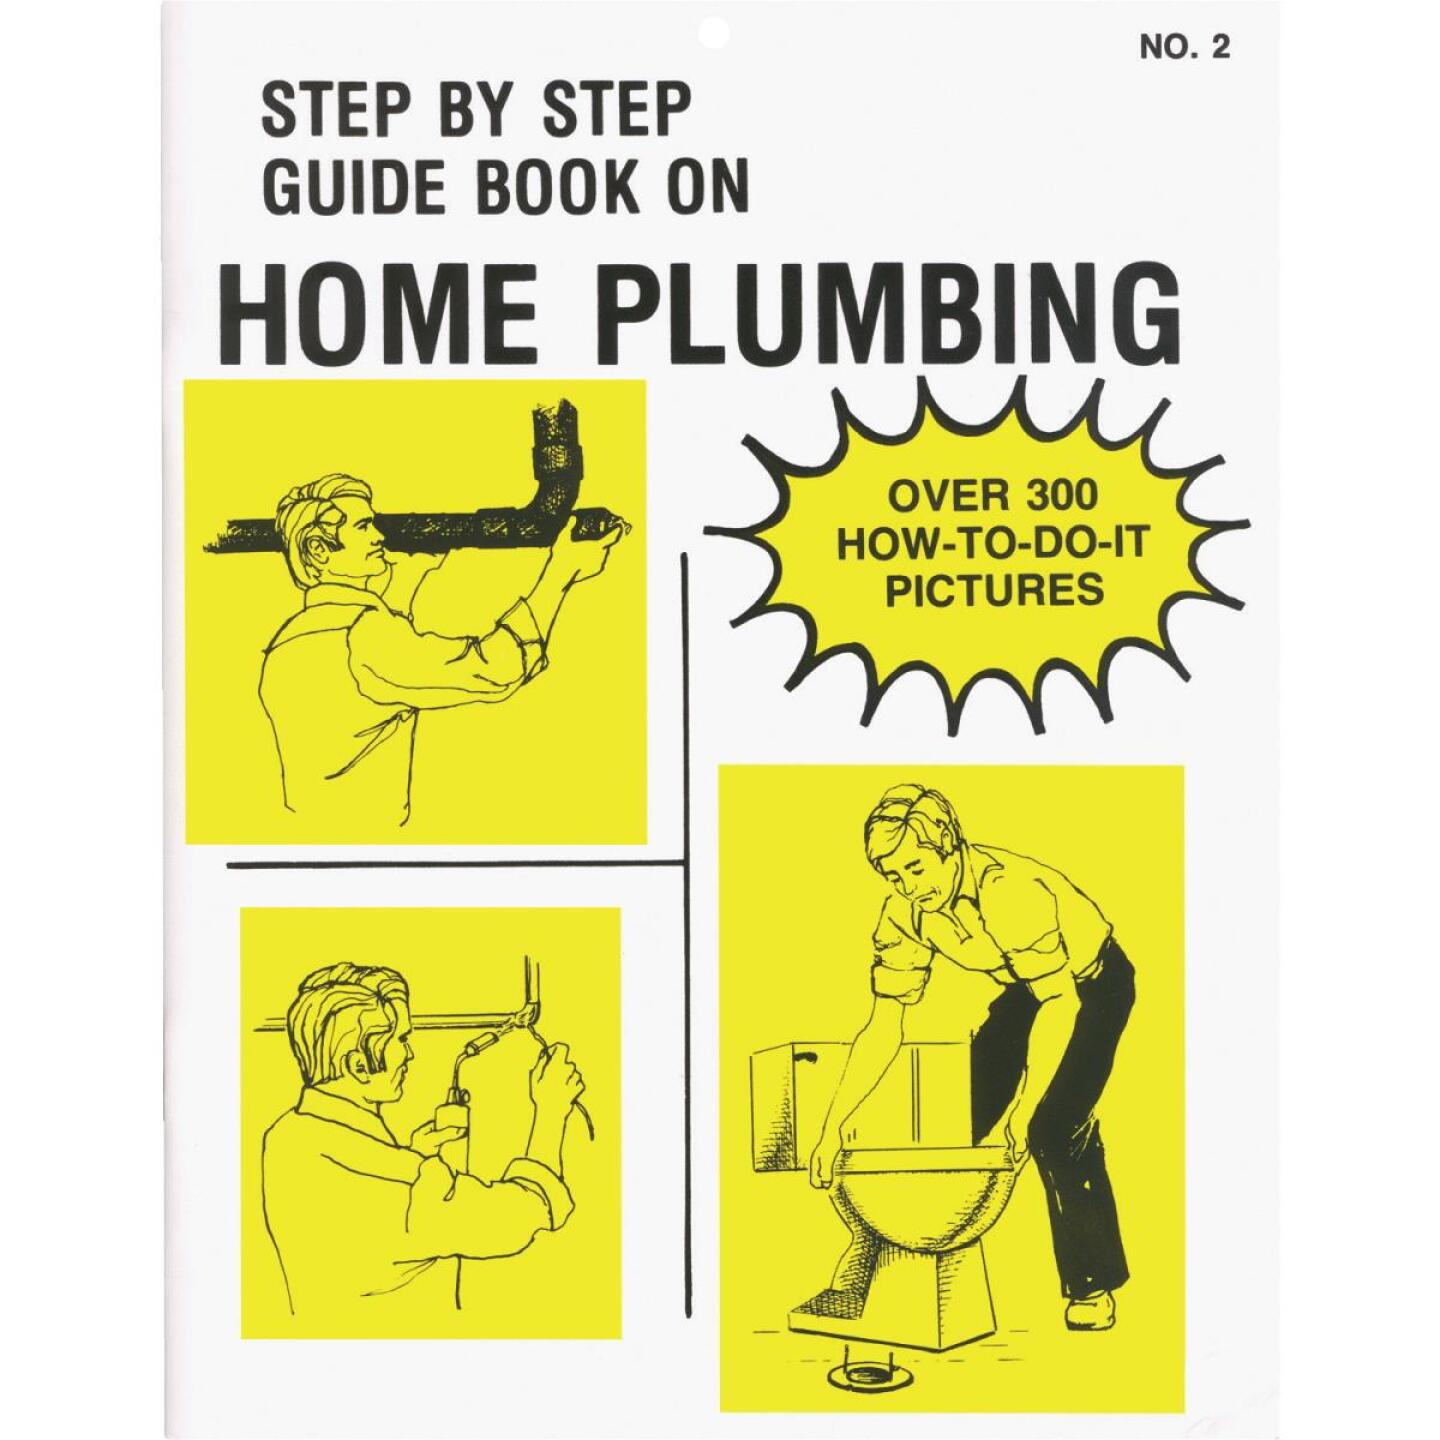 Step by Step Guide Home Plumbing Book Image 1